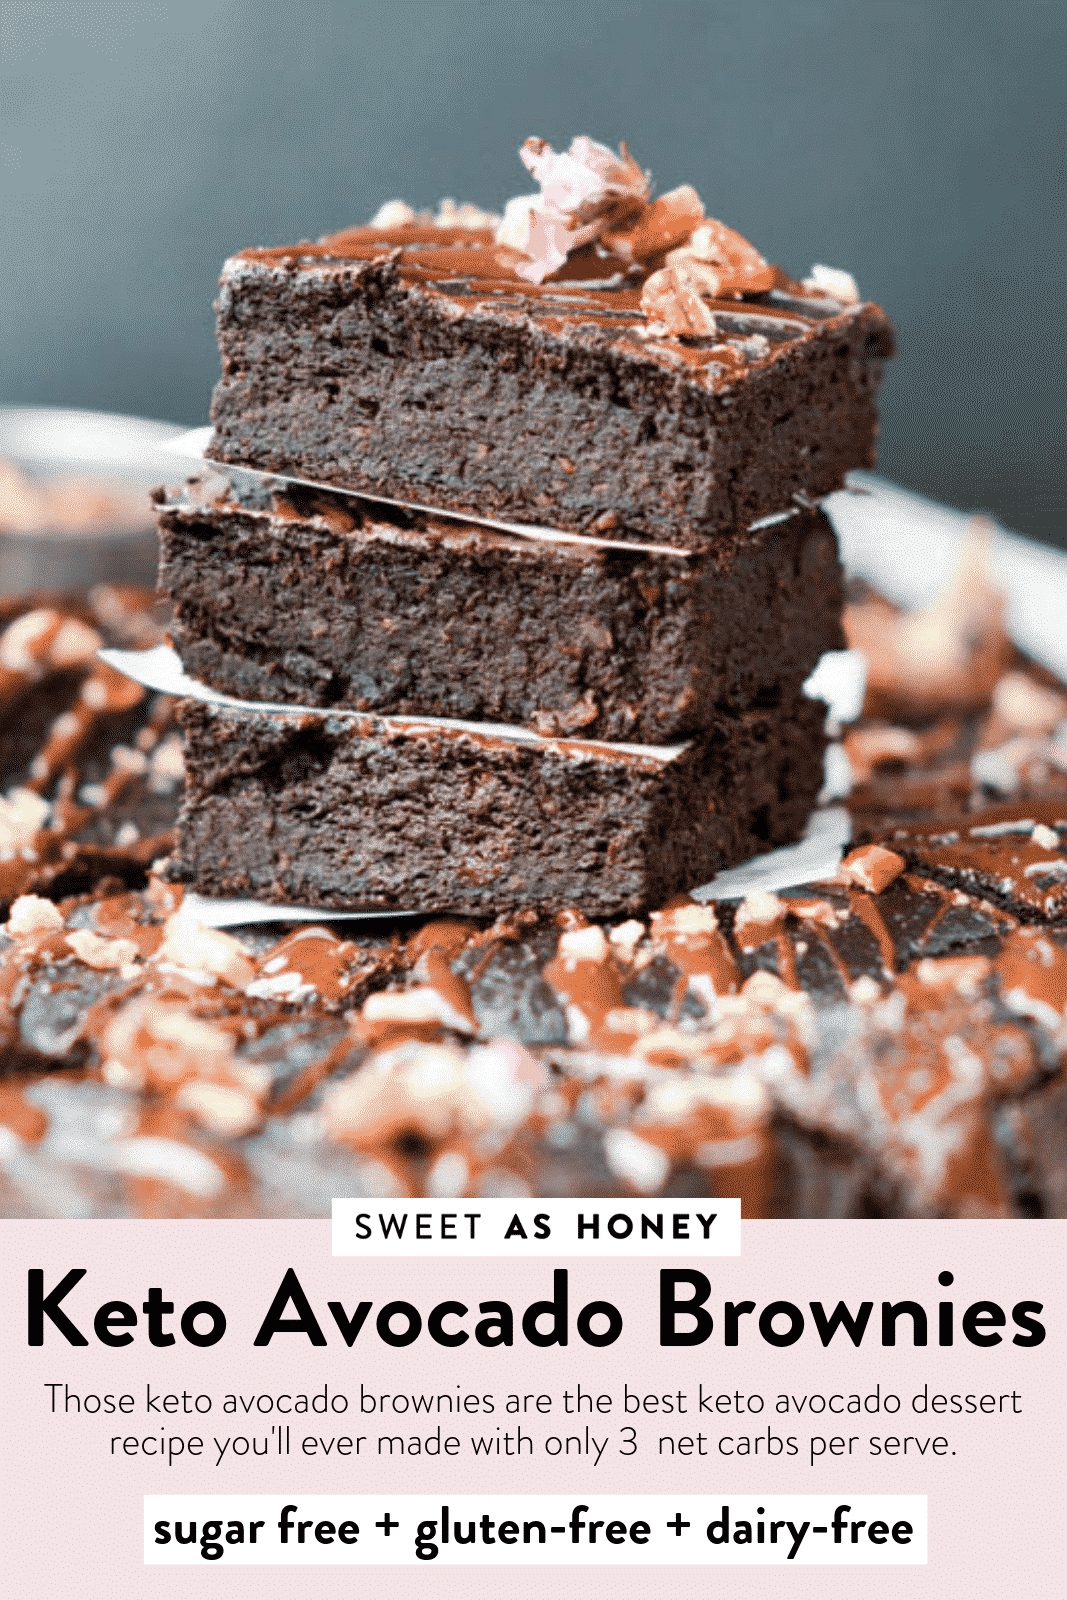 THE BEST AVOCADO BROWNIES